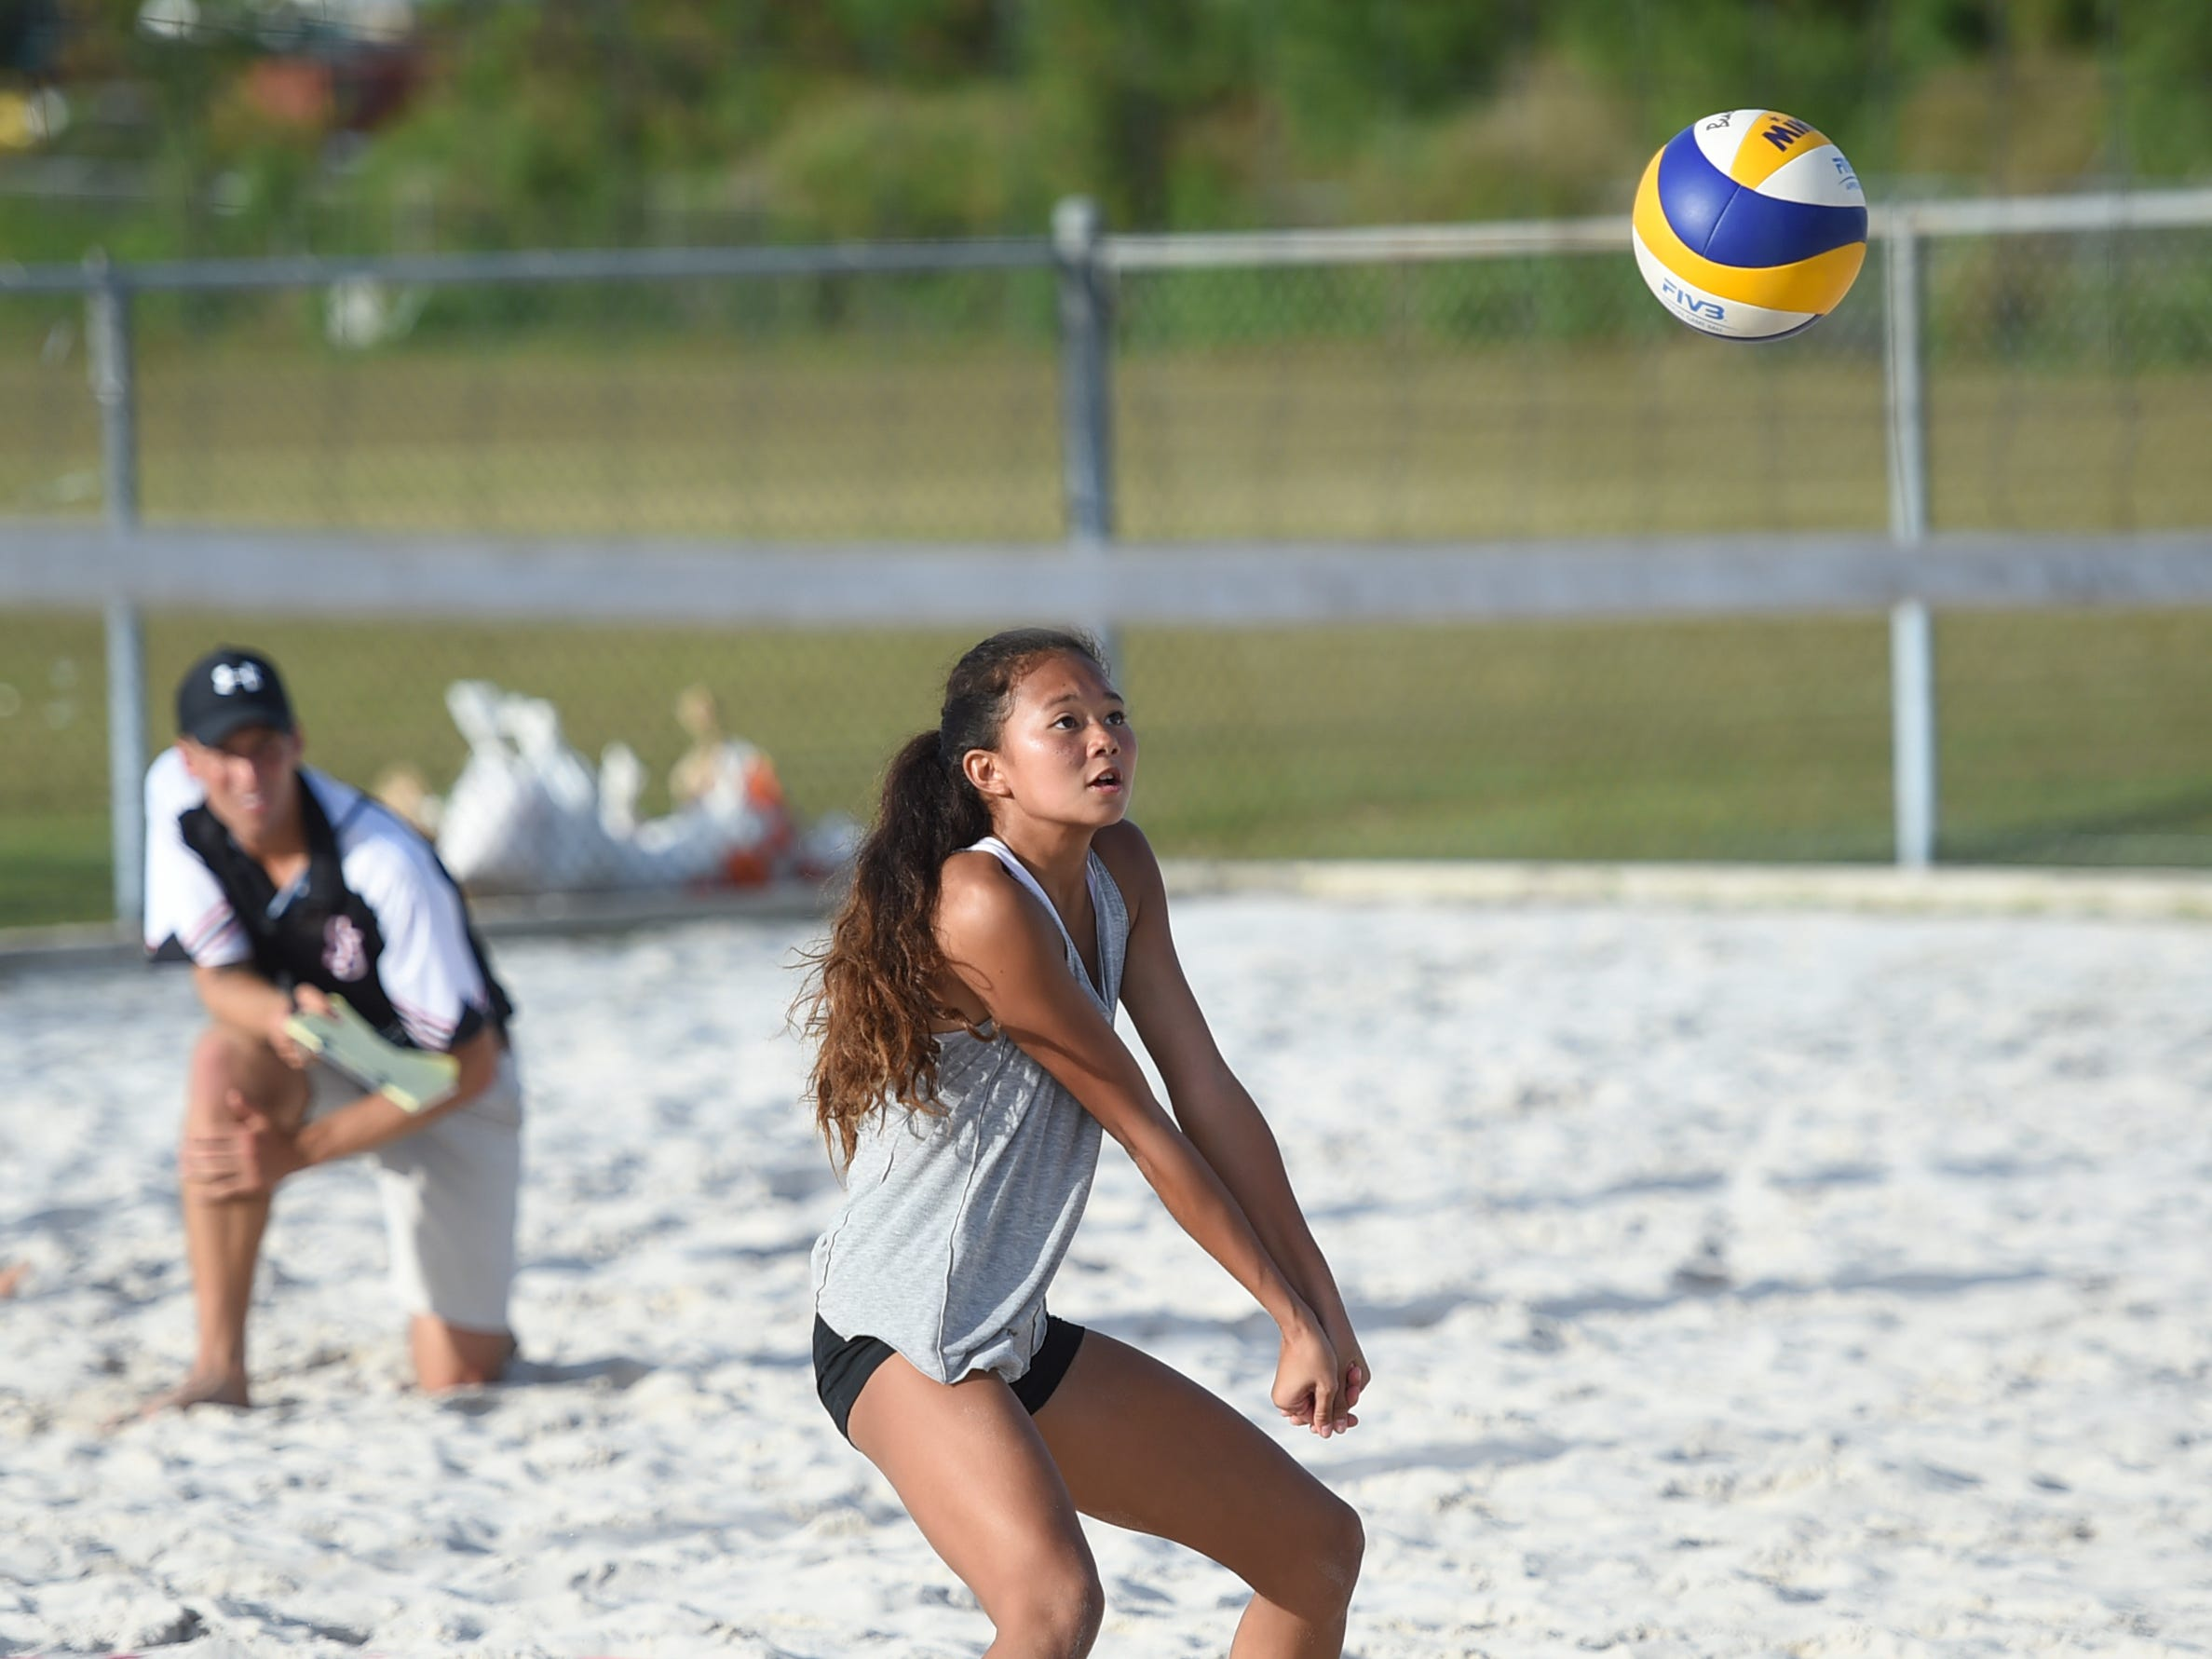 St. John's player Yasmeen Lopez anticipates the ball during the IIAAG Beach Volleyball championship game at the Guam Football Association National Training Center in Dededo, March 12, 2019.